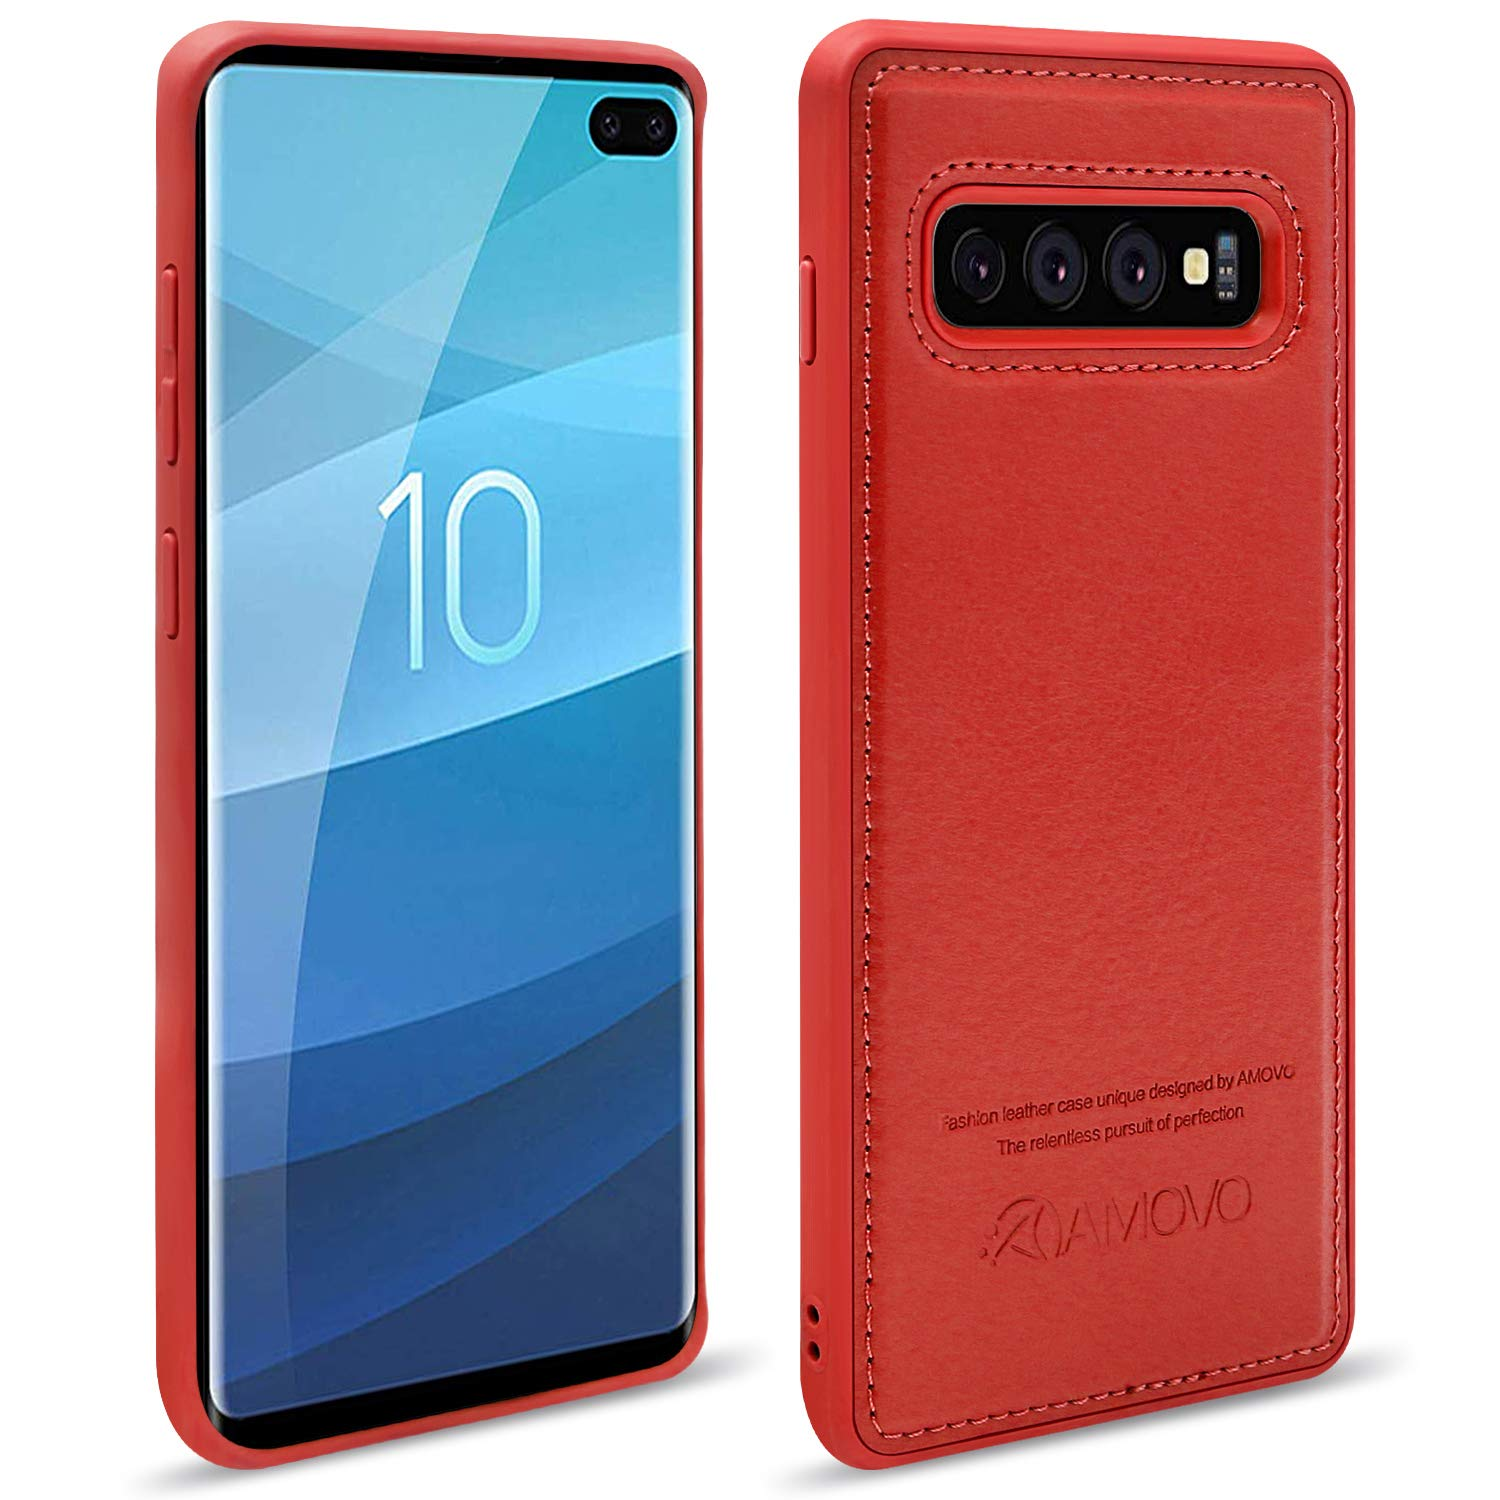 6.4/'/' 2 in 1 S10Plus Vegan Leather 6.4 Samsung Galaxy S10 Plus Wallet Case Detachable AMOVO Case for Galaxy S10 Plus//S10+ Black S10+ Flip Case with Gift Box Package Wrist Strap